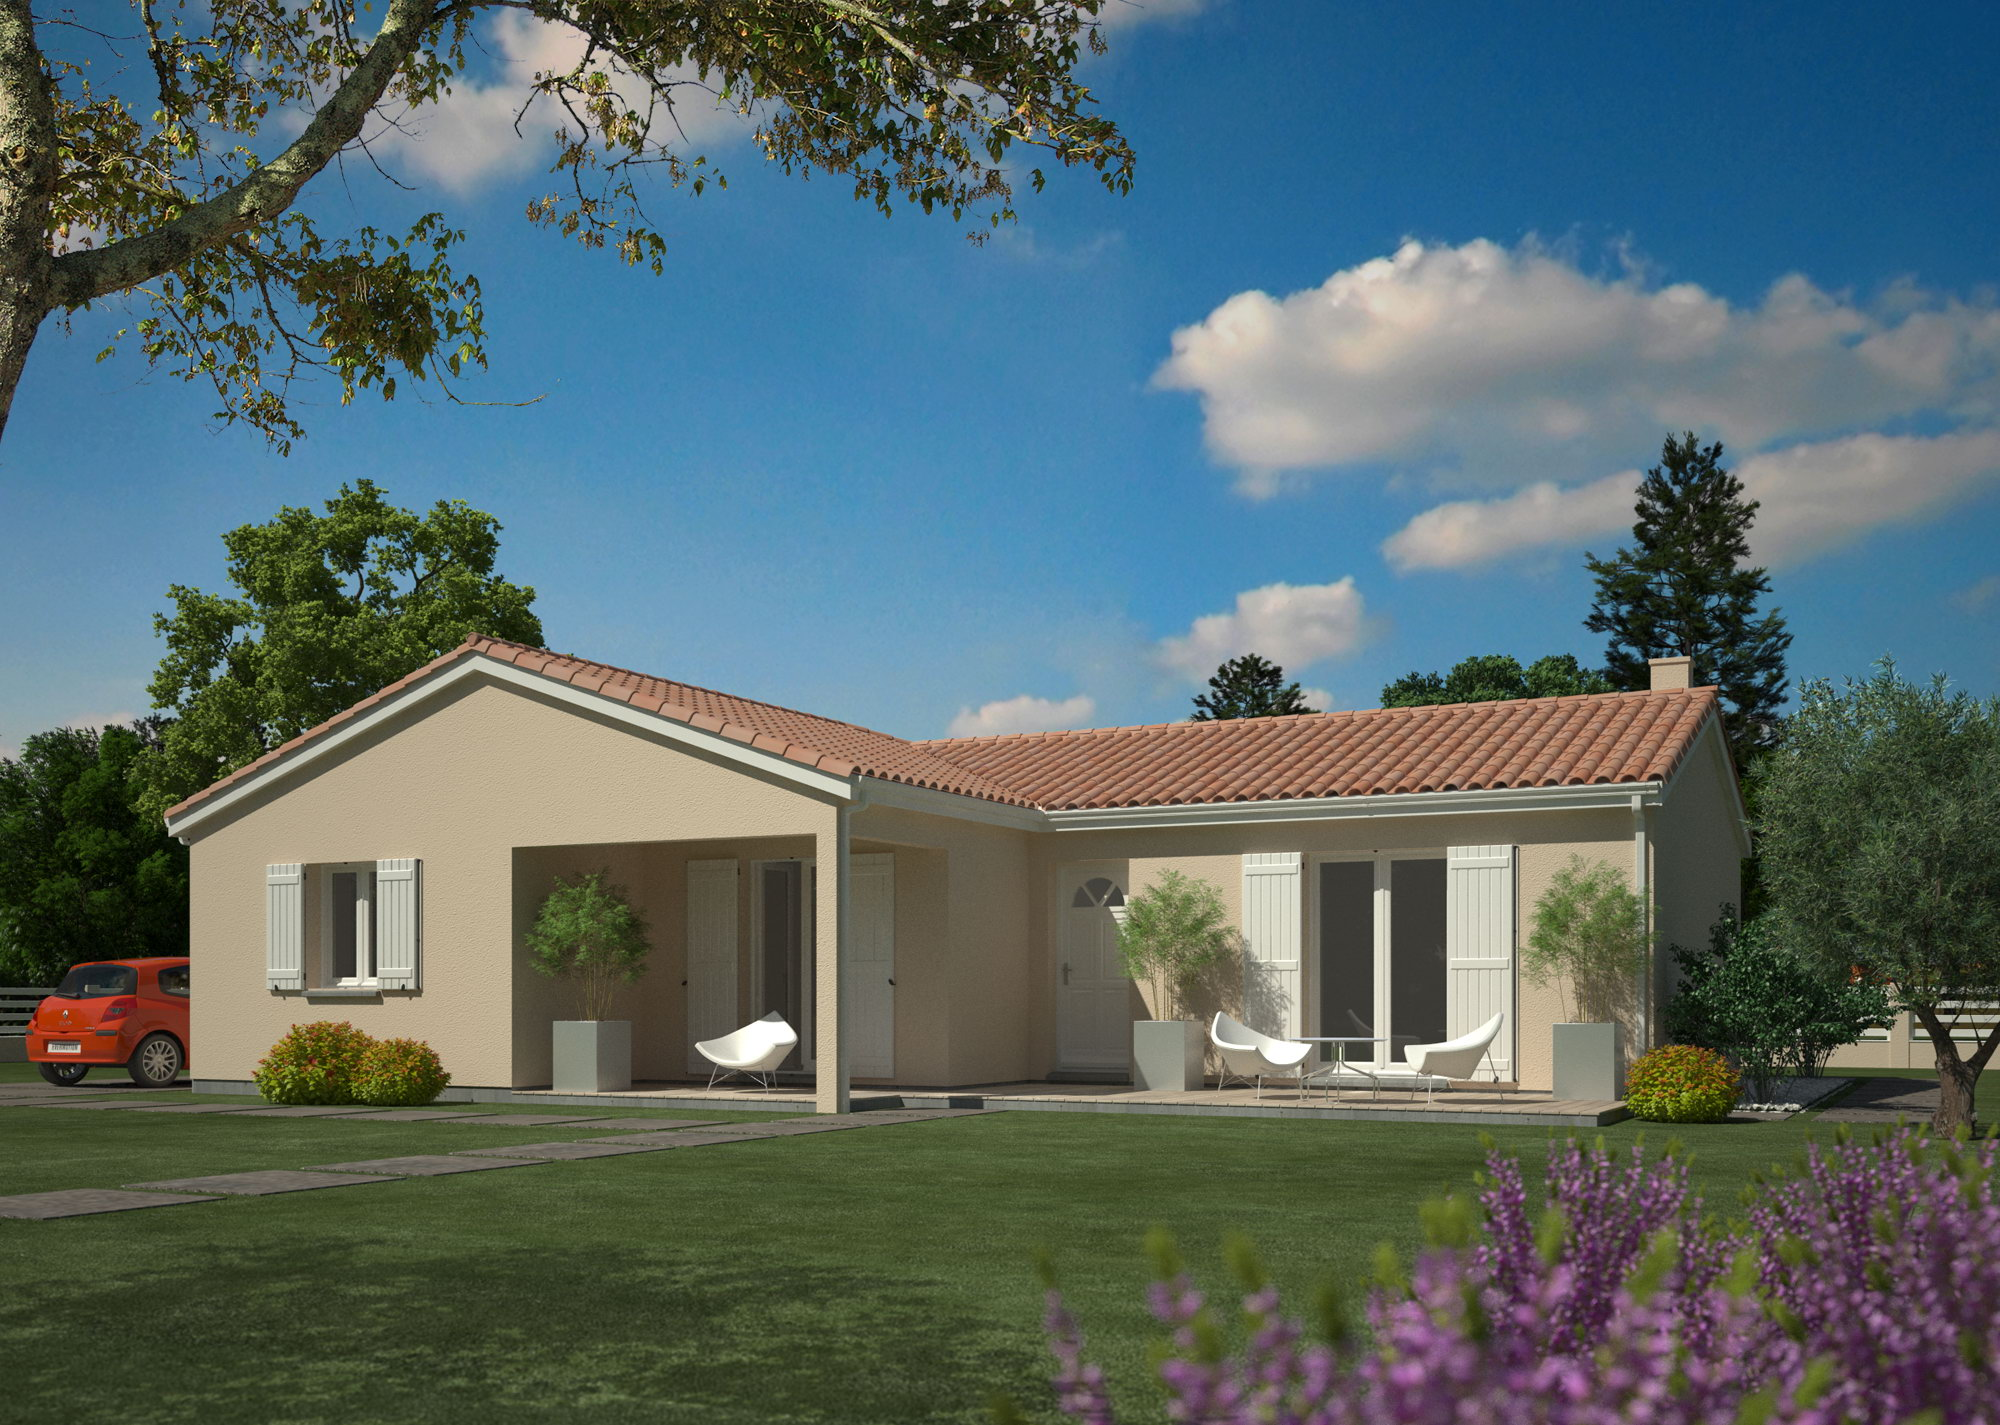 Les maisons by chantal b constructeurs de france for Maisons chantal b